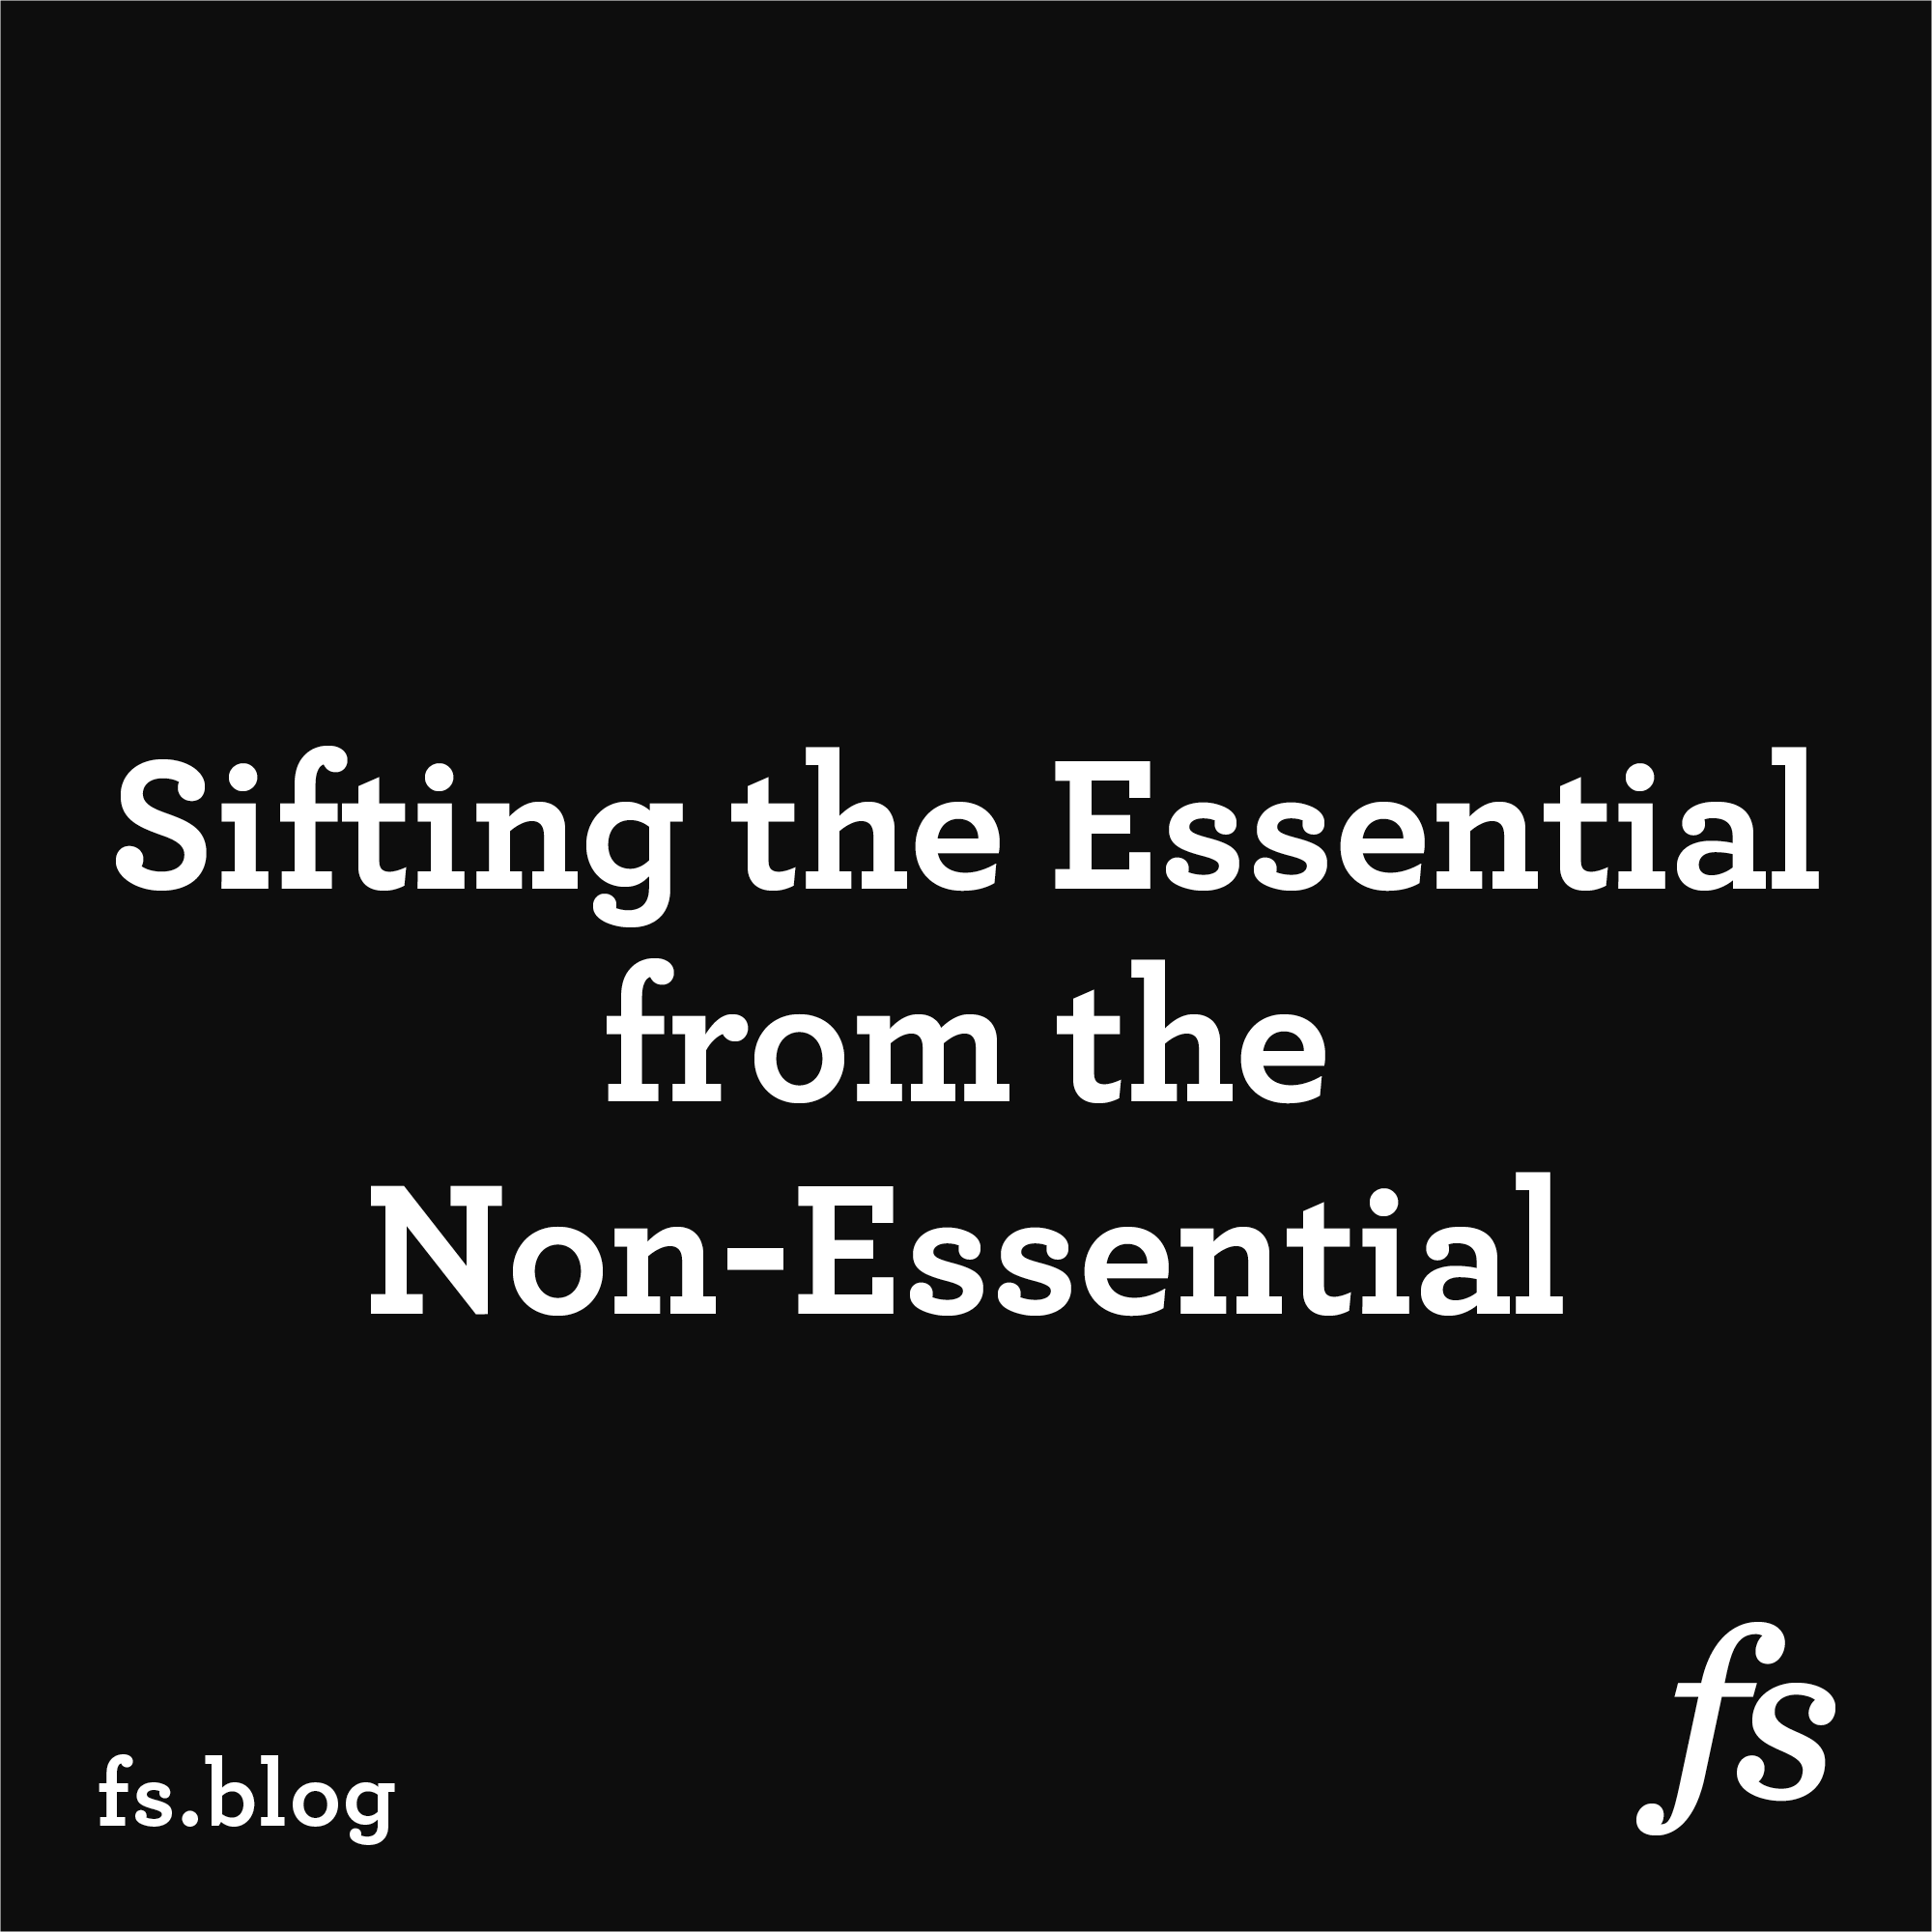 Albert Einstein on Sifting the Essential from the Non-Essential